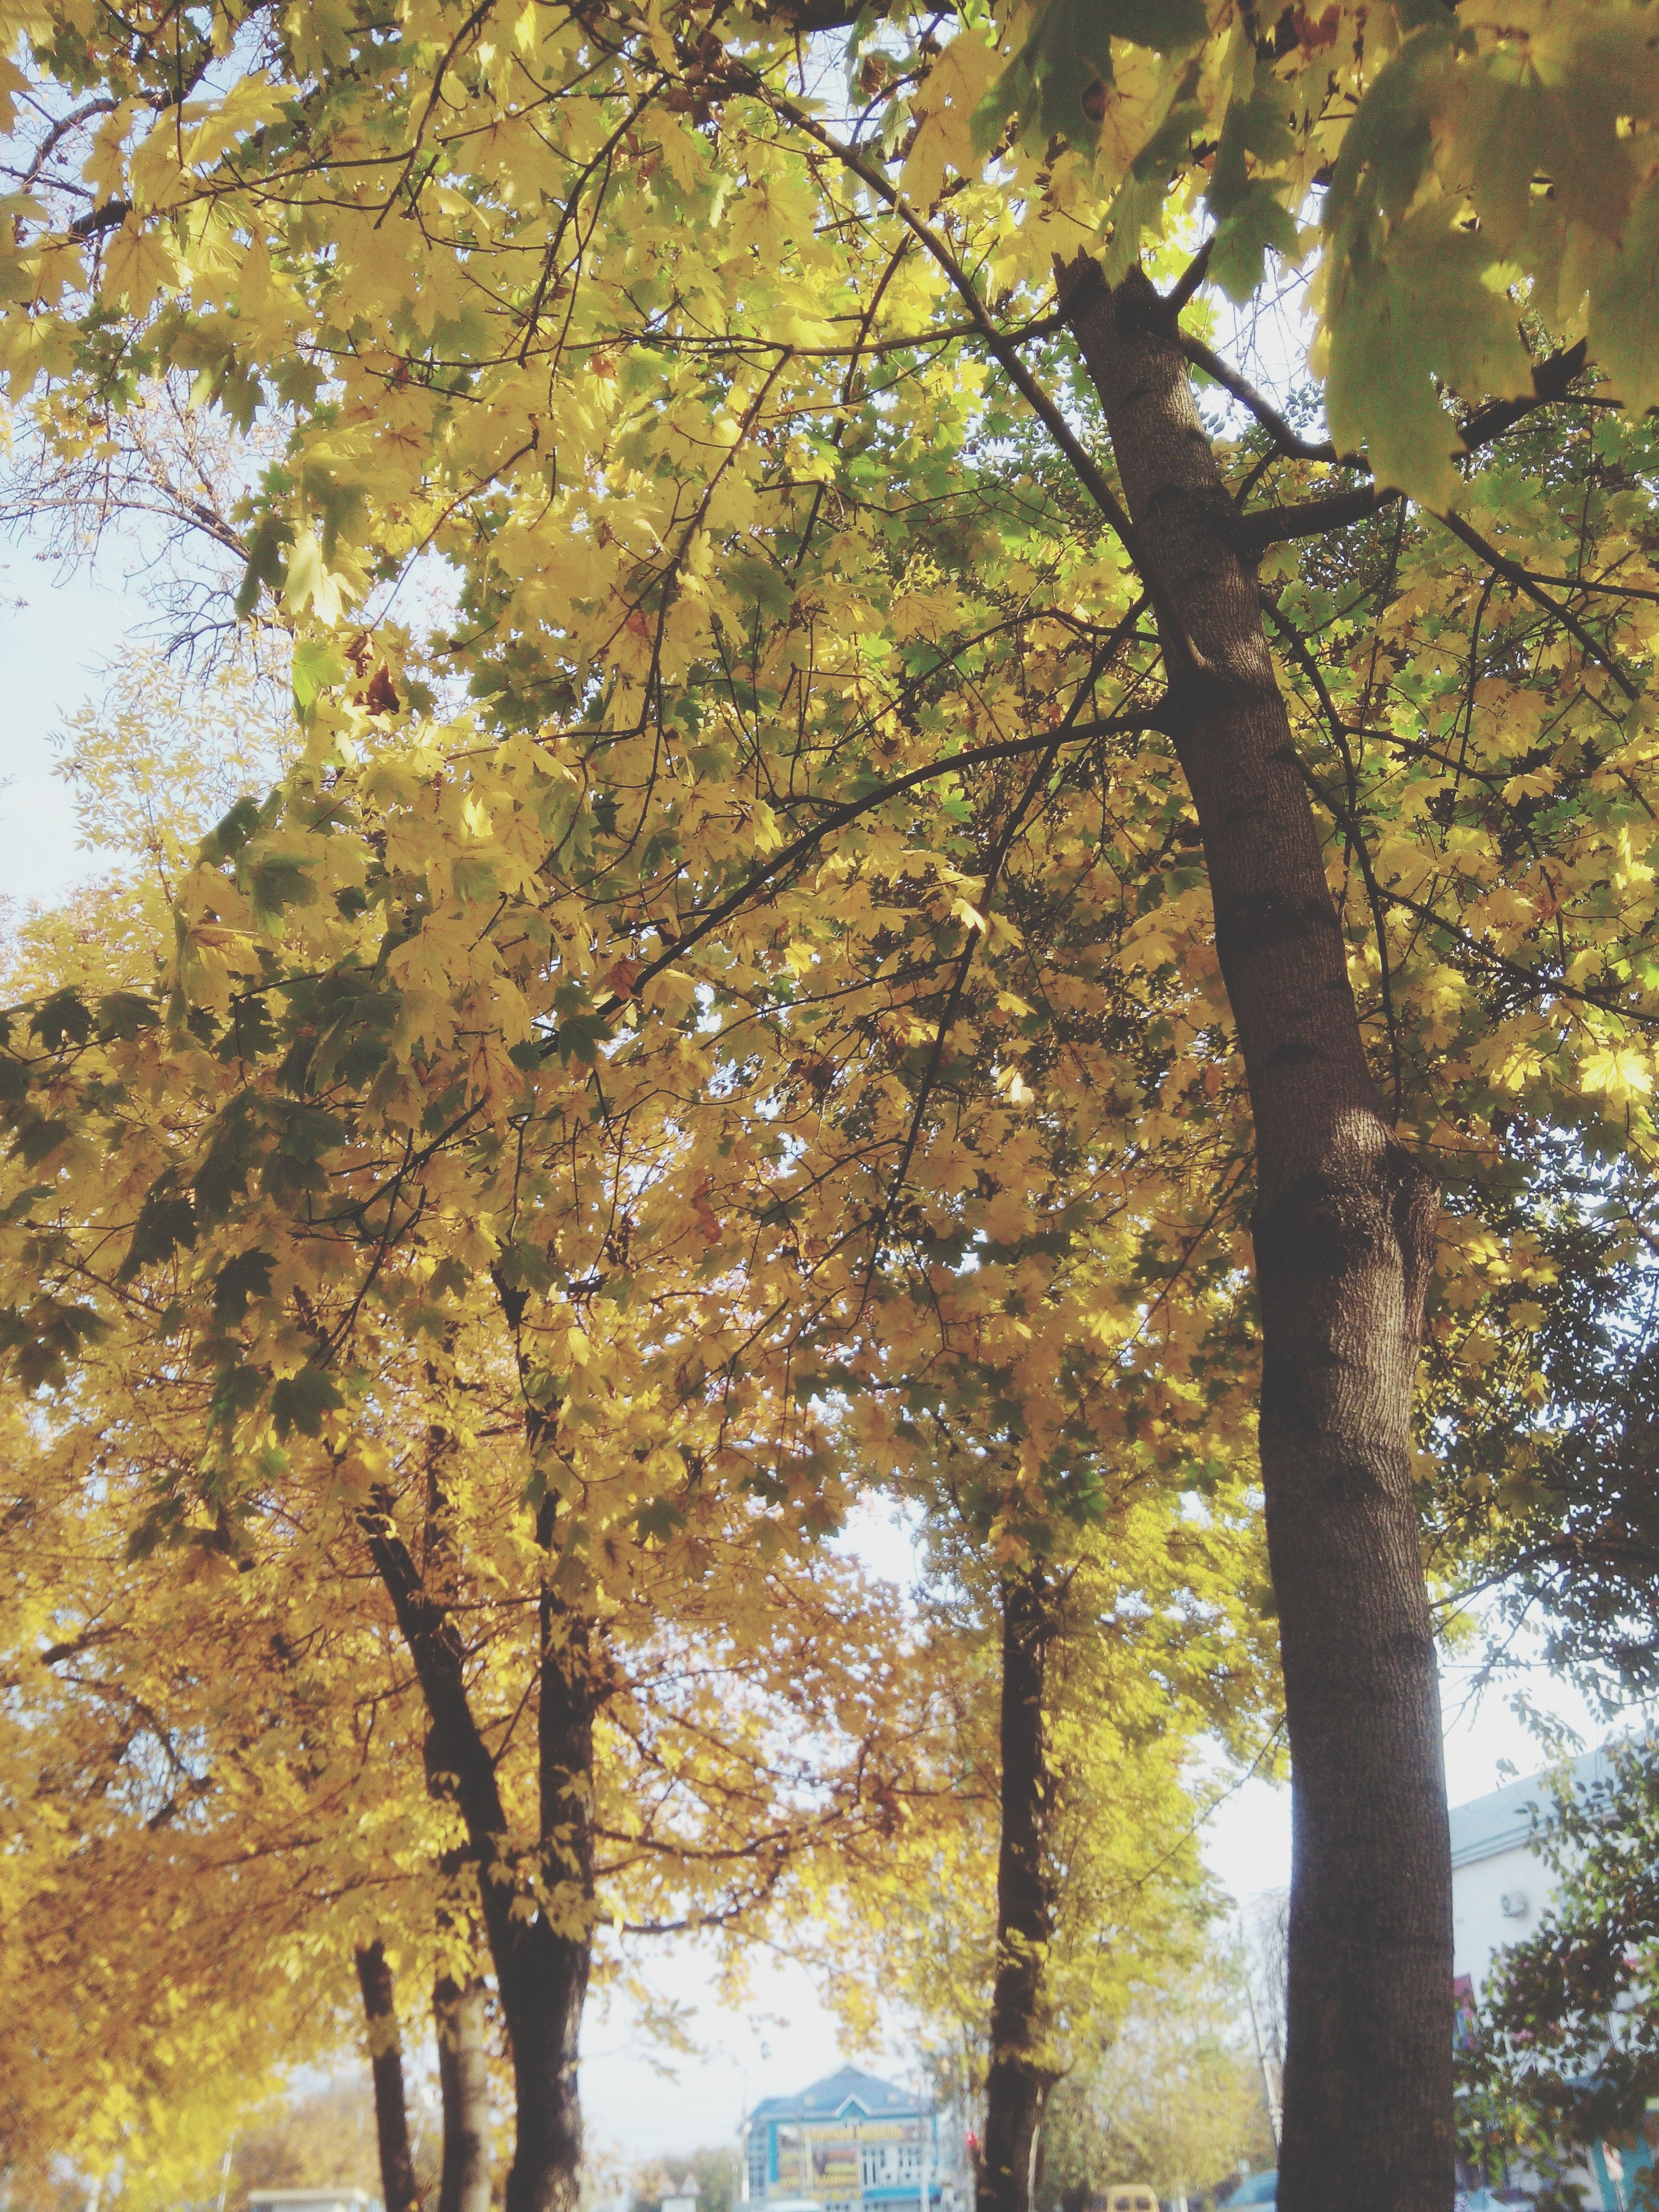 tree, branch, low angle view, growth, tree trunk, yellow, autumn, nature, beauty in nature, sunlight, day, change, sky, outdoors, tranquility, leaf, no people, built structure, season, building exterior